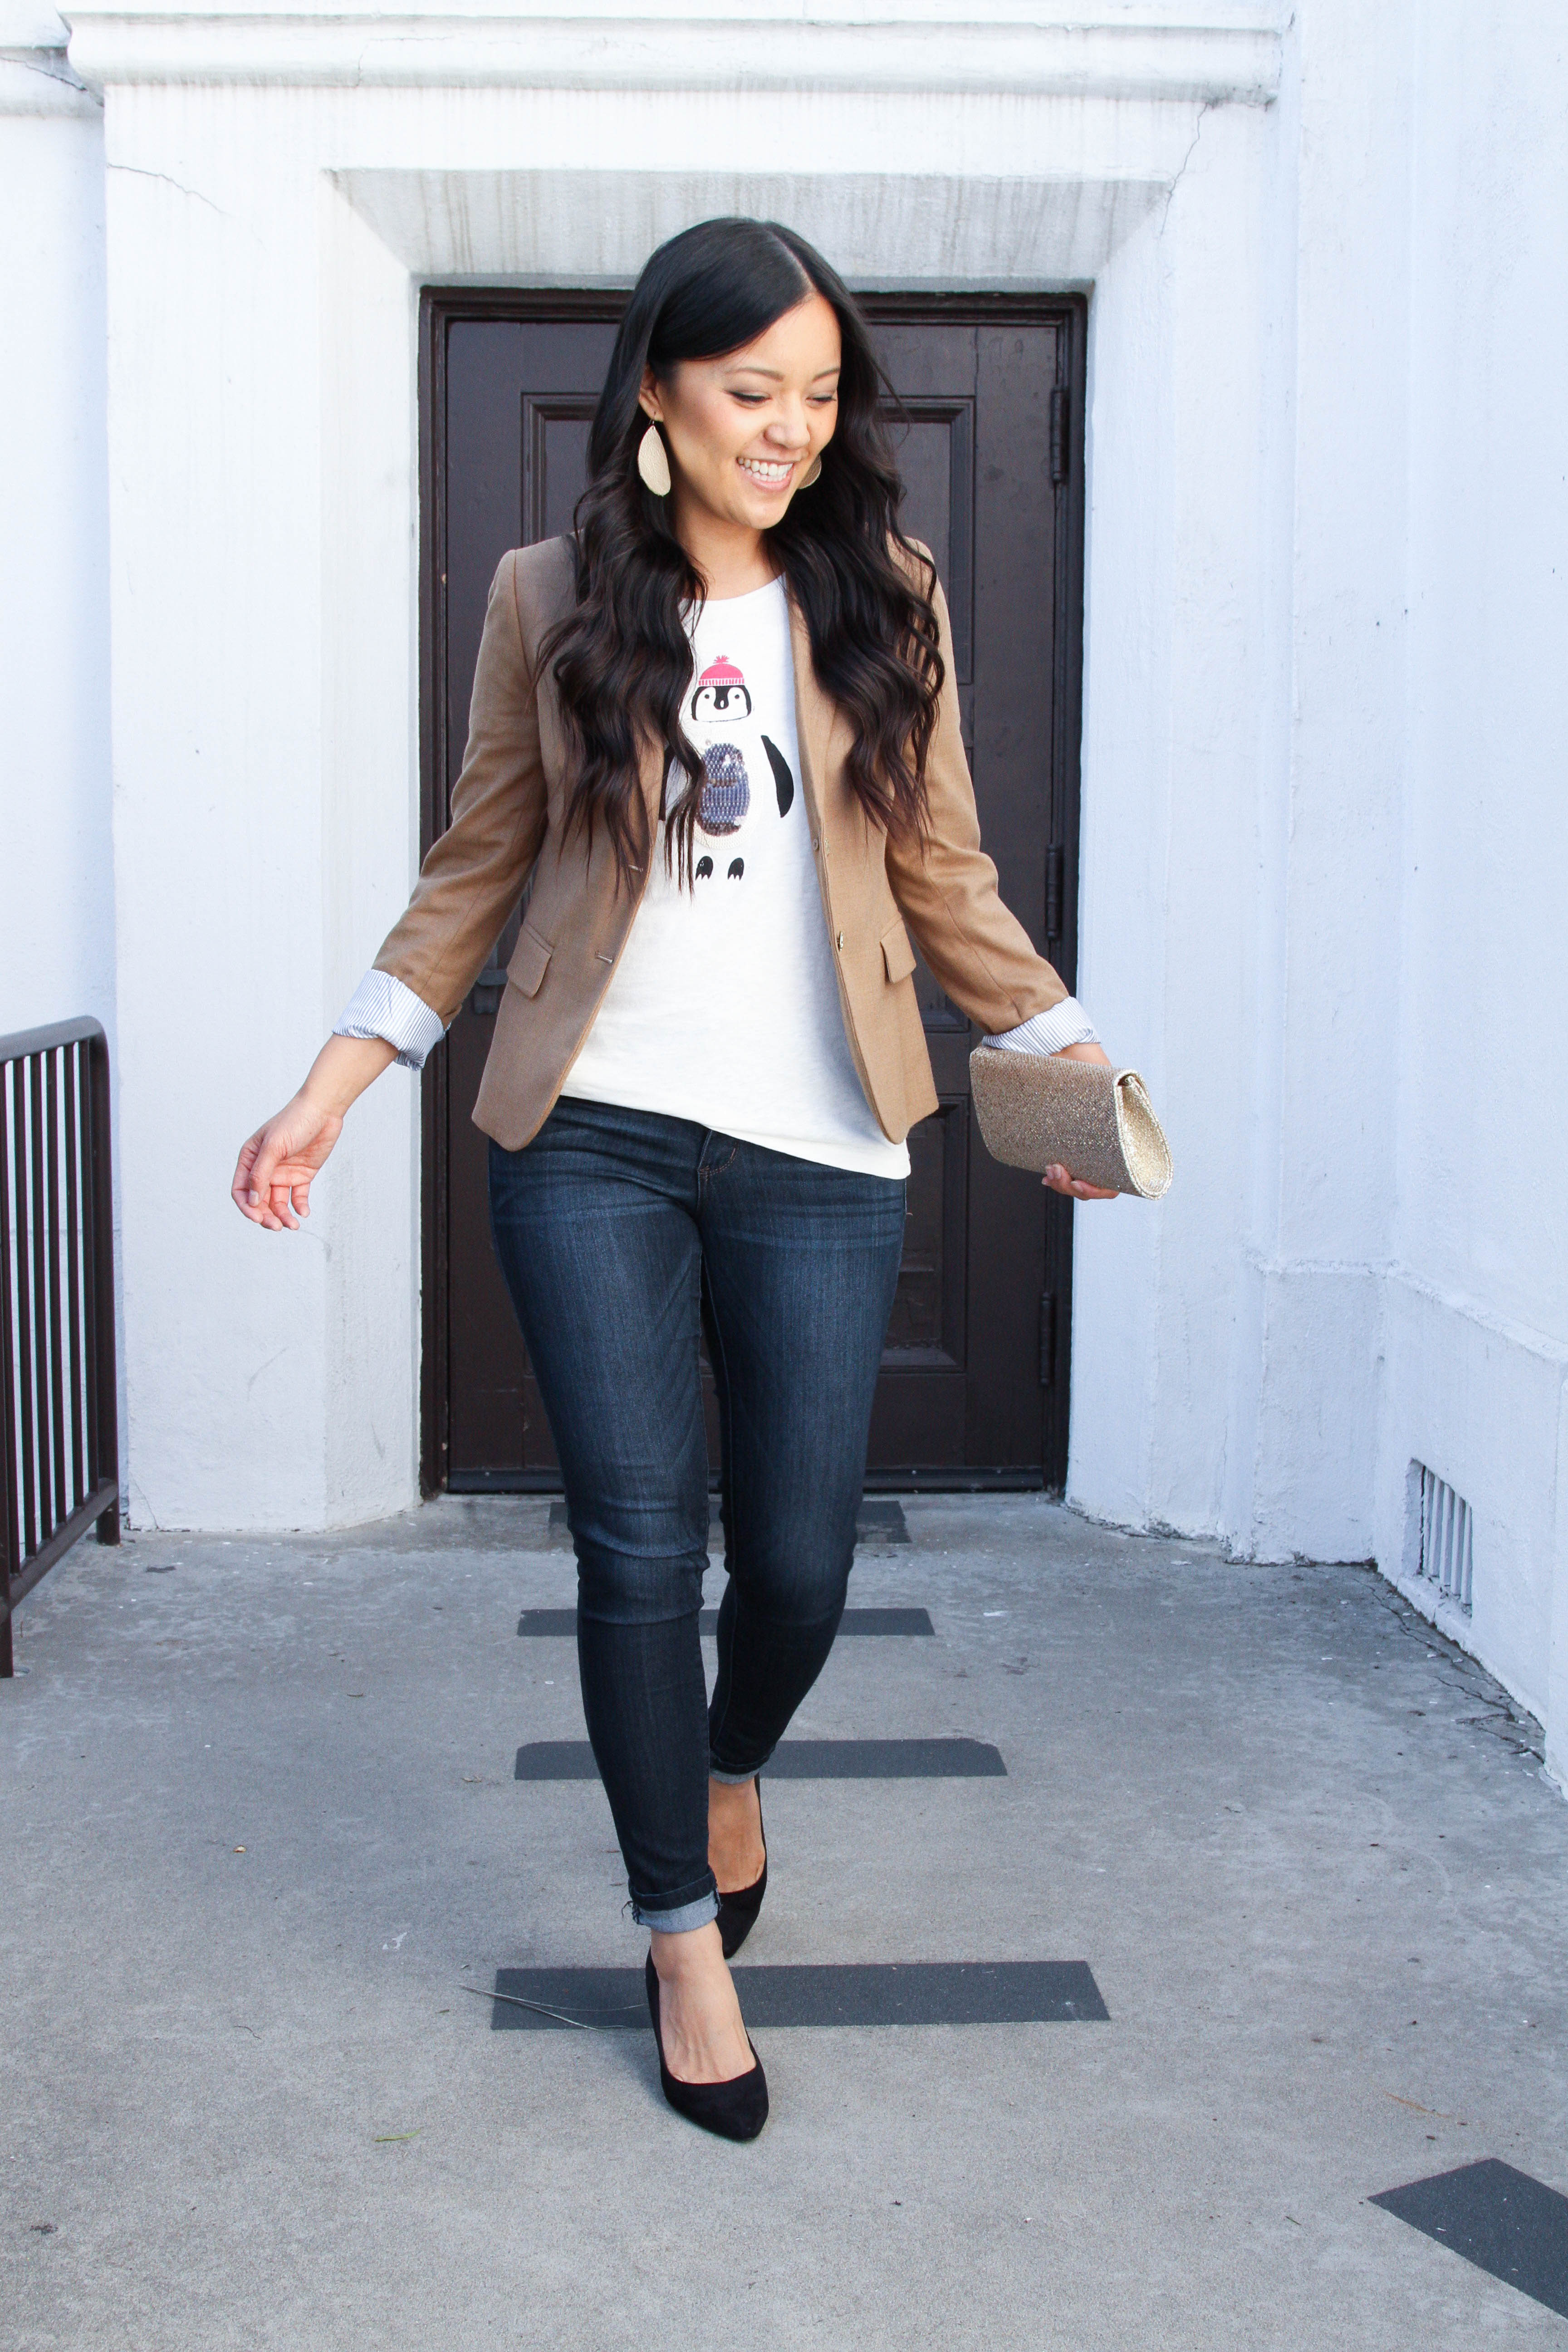 Tan Blazer + Holiday Penguin Tee + Skinnies + Black Pumps + Skinnies